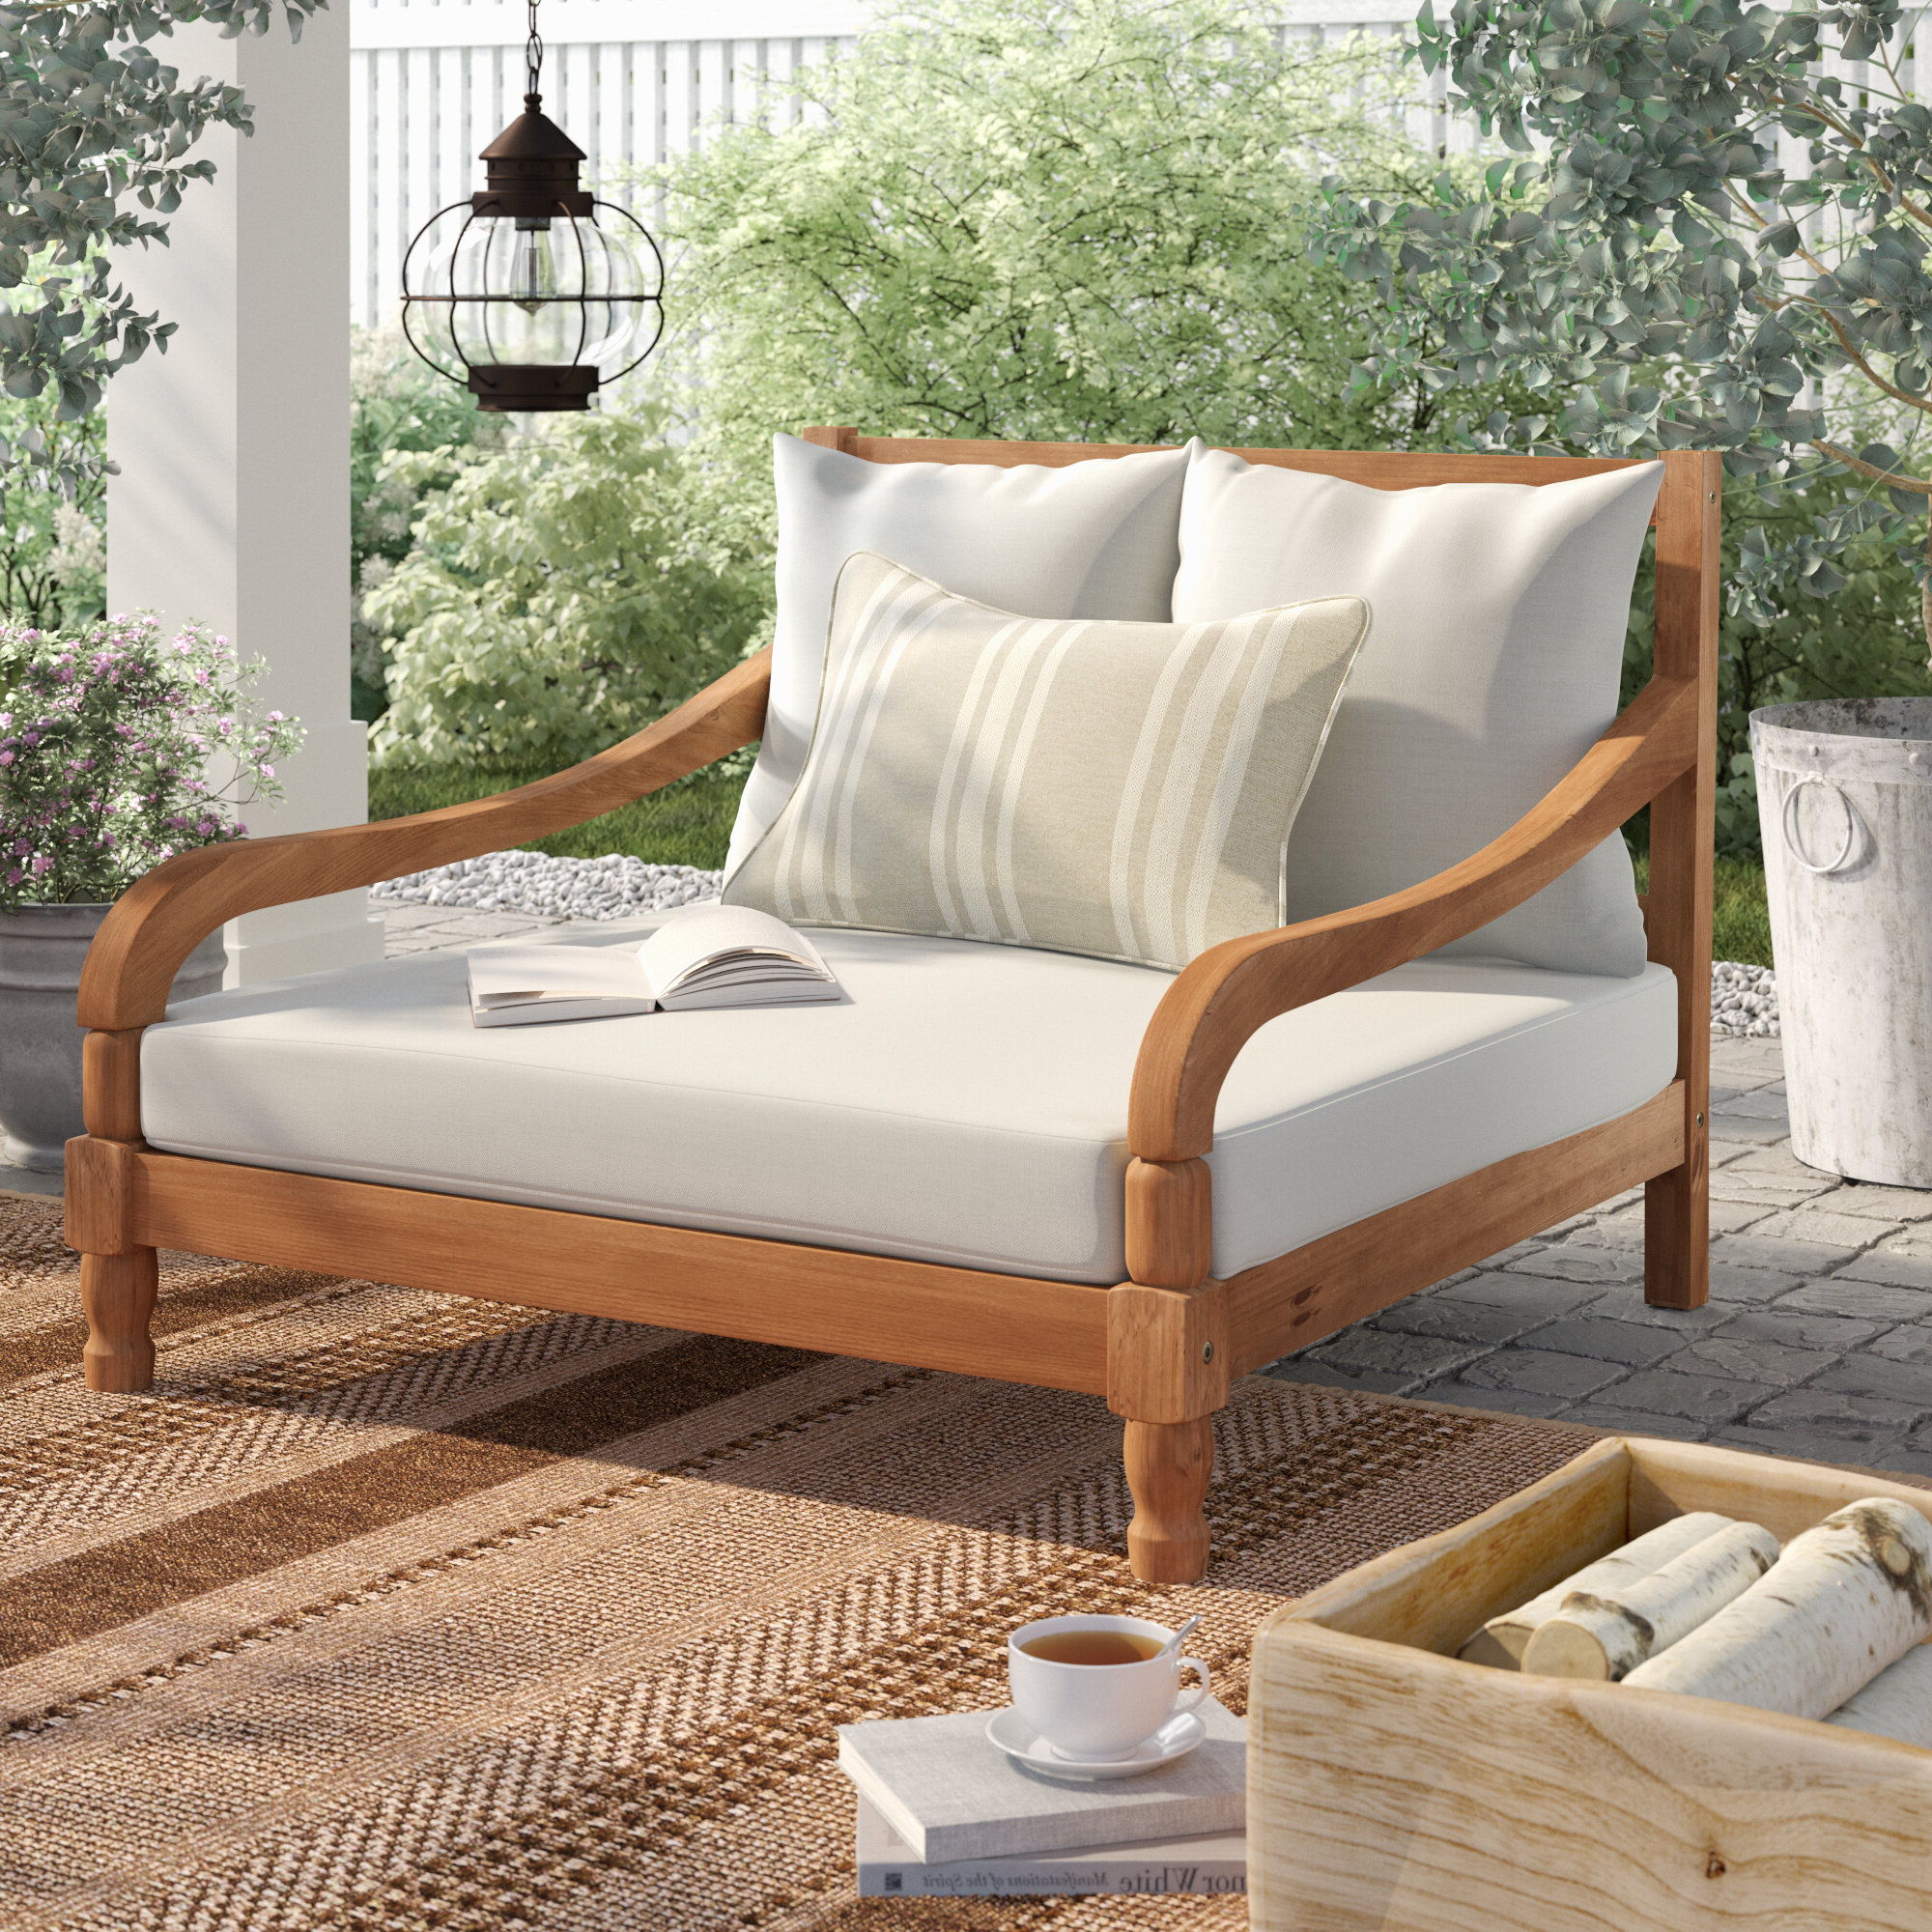 2019 Outdoor Rustic Acacia Wood Chaise Lounges With Wicker Seats Pertaining To Wiest Double Chaise Lounge With Cushion (View 1 of 25)